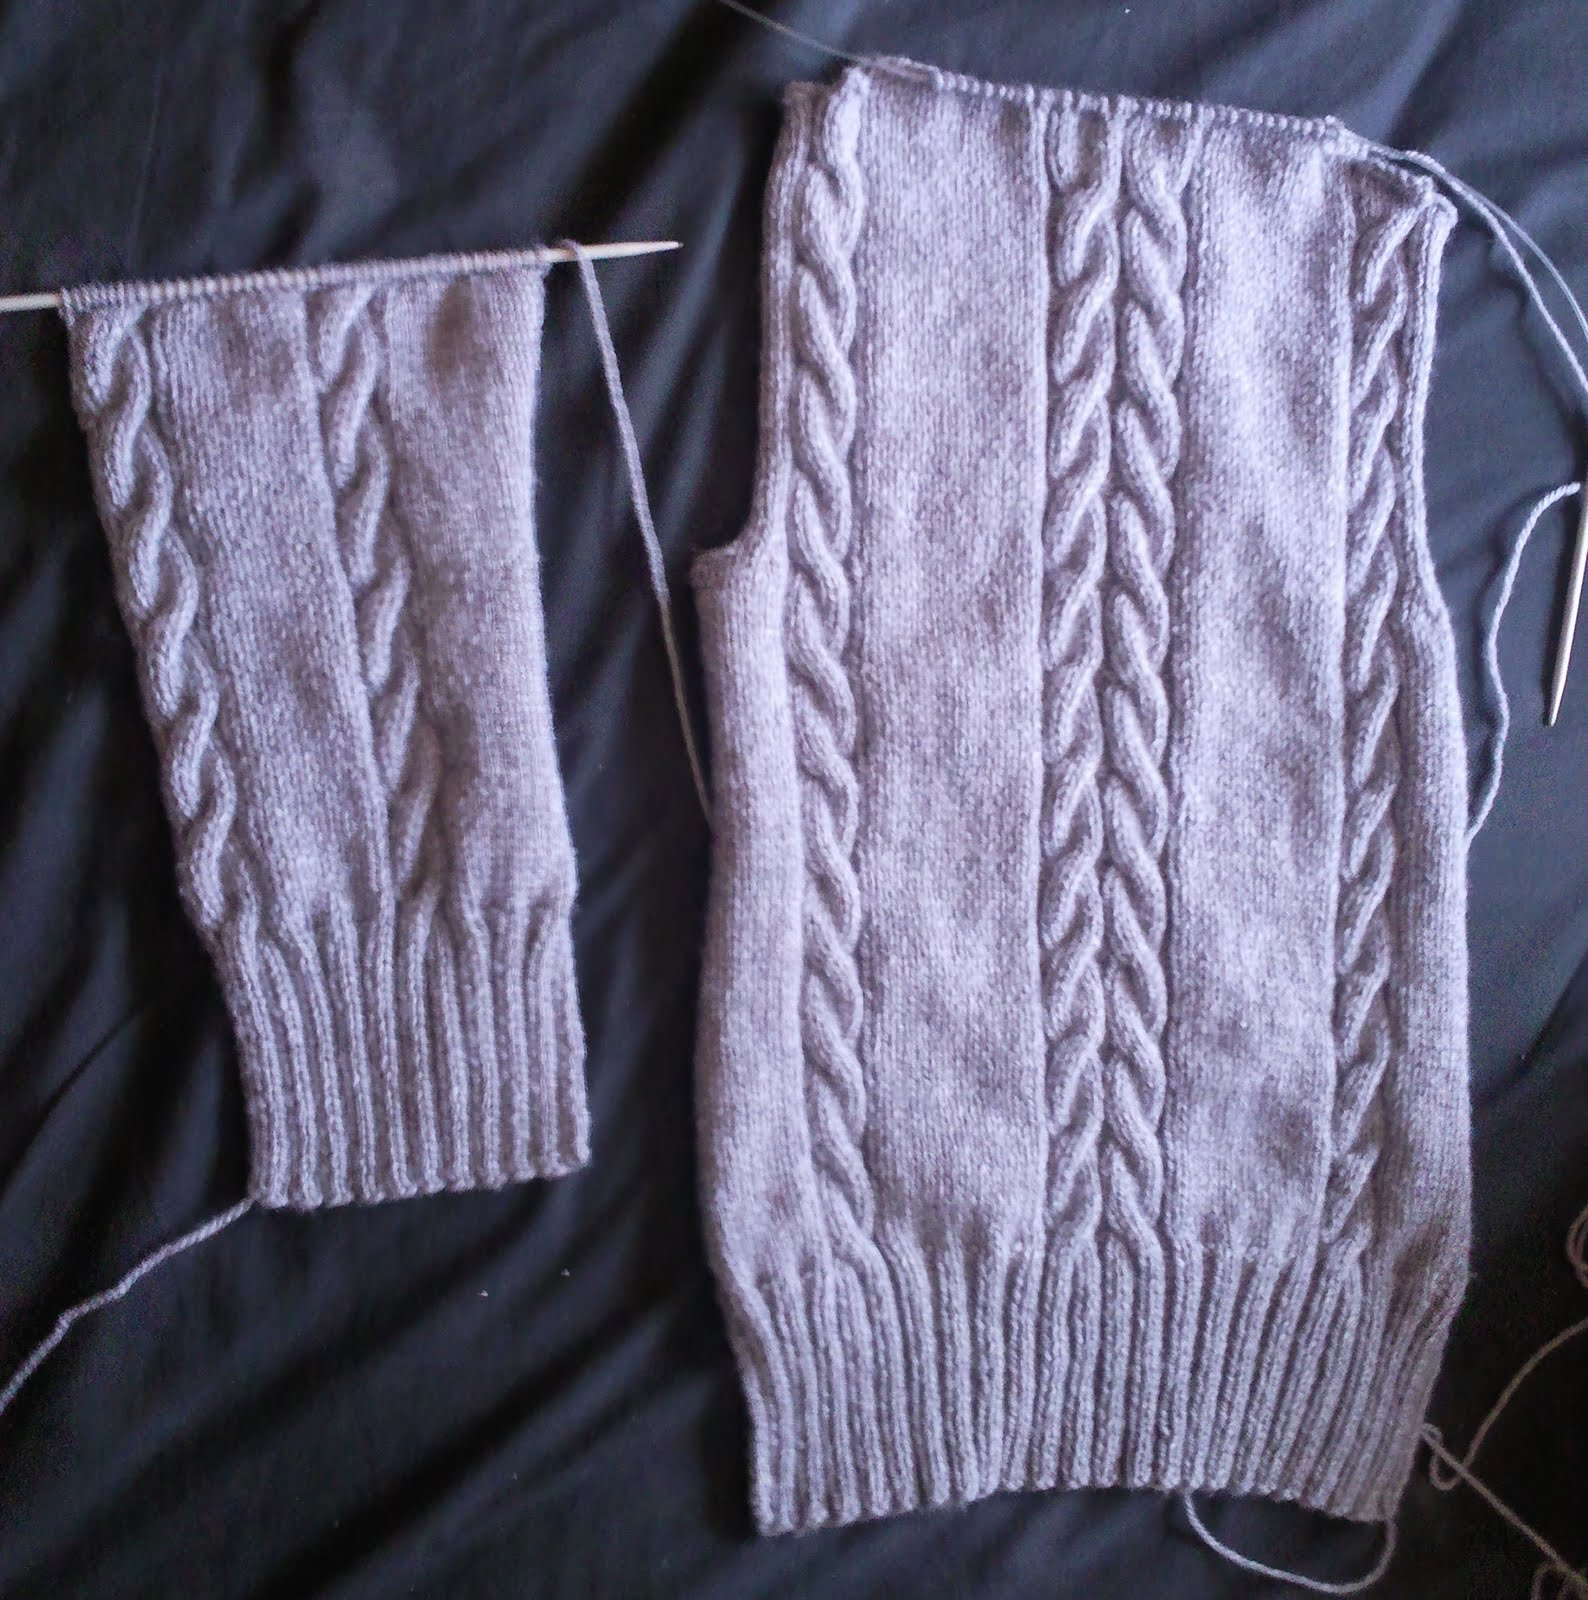 Central Park Hoodie Knitting Pattern Free : Knit one, Stitch one, Save one?: WIP Wednesday